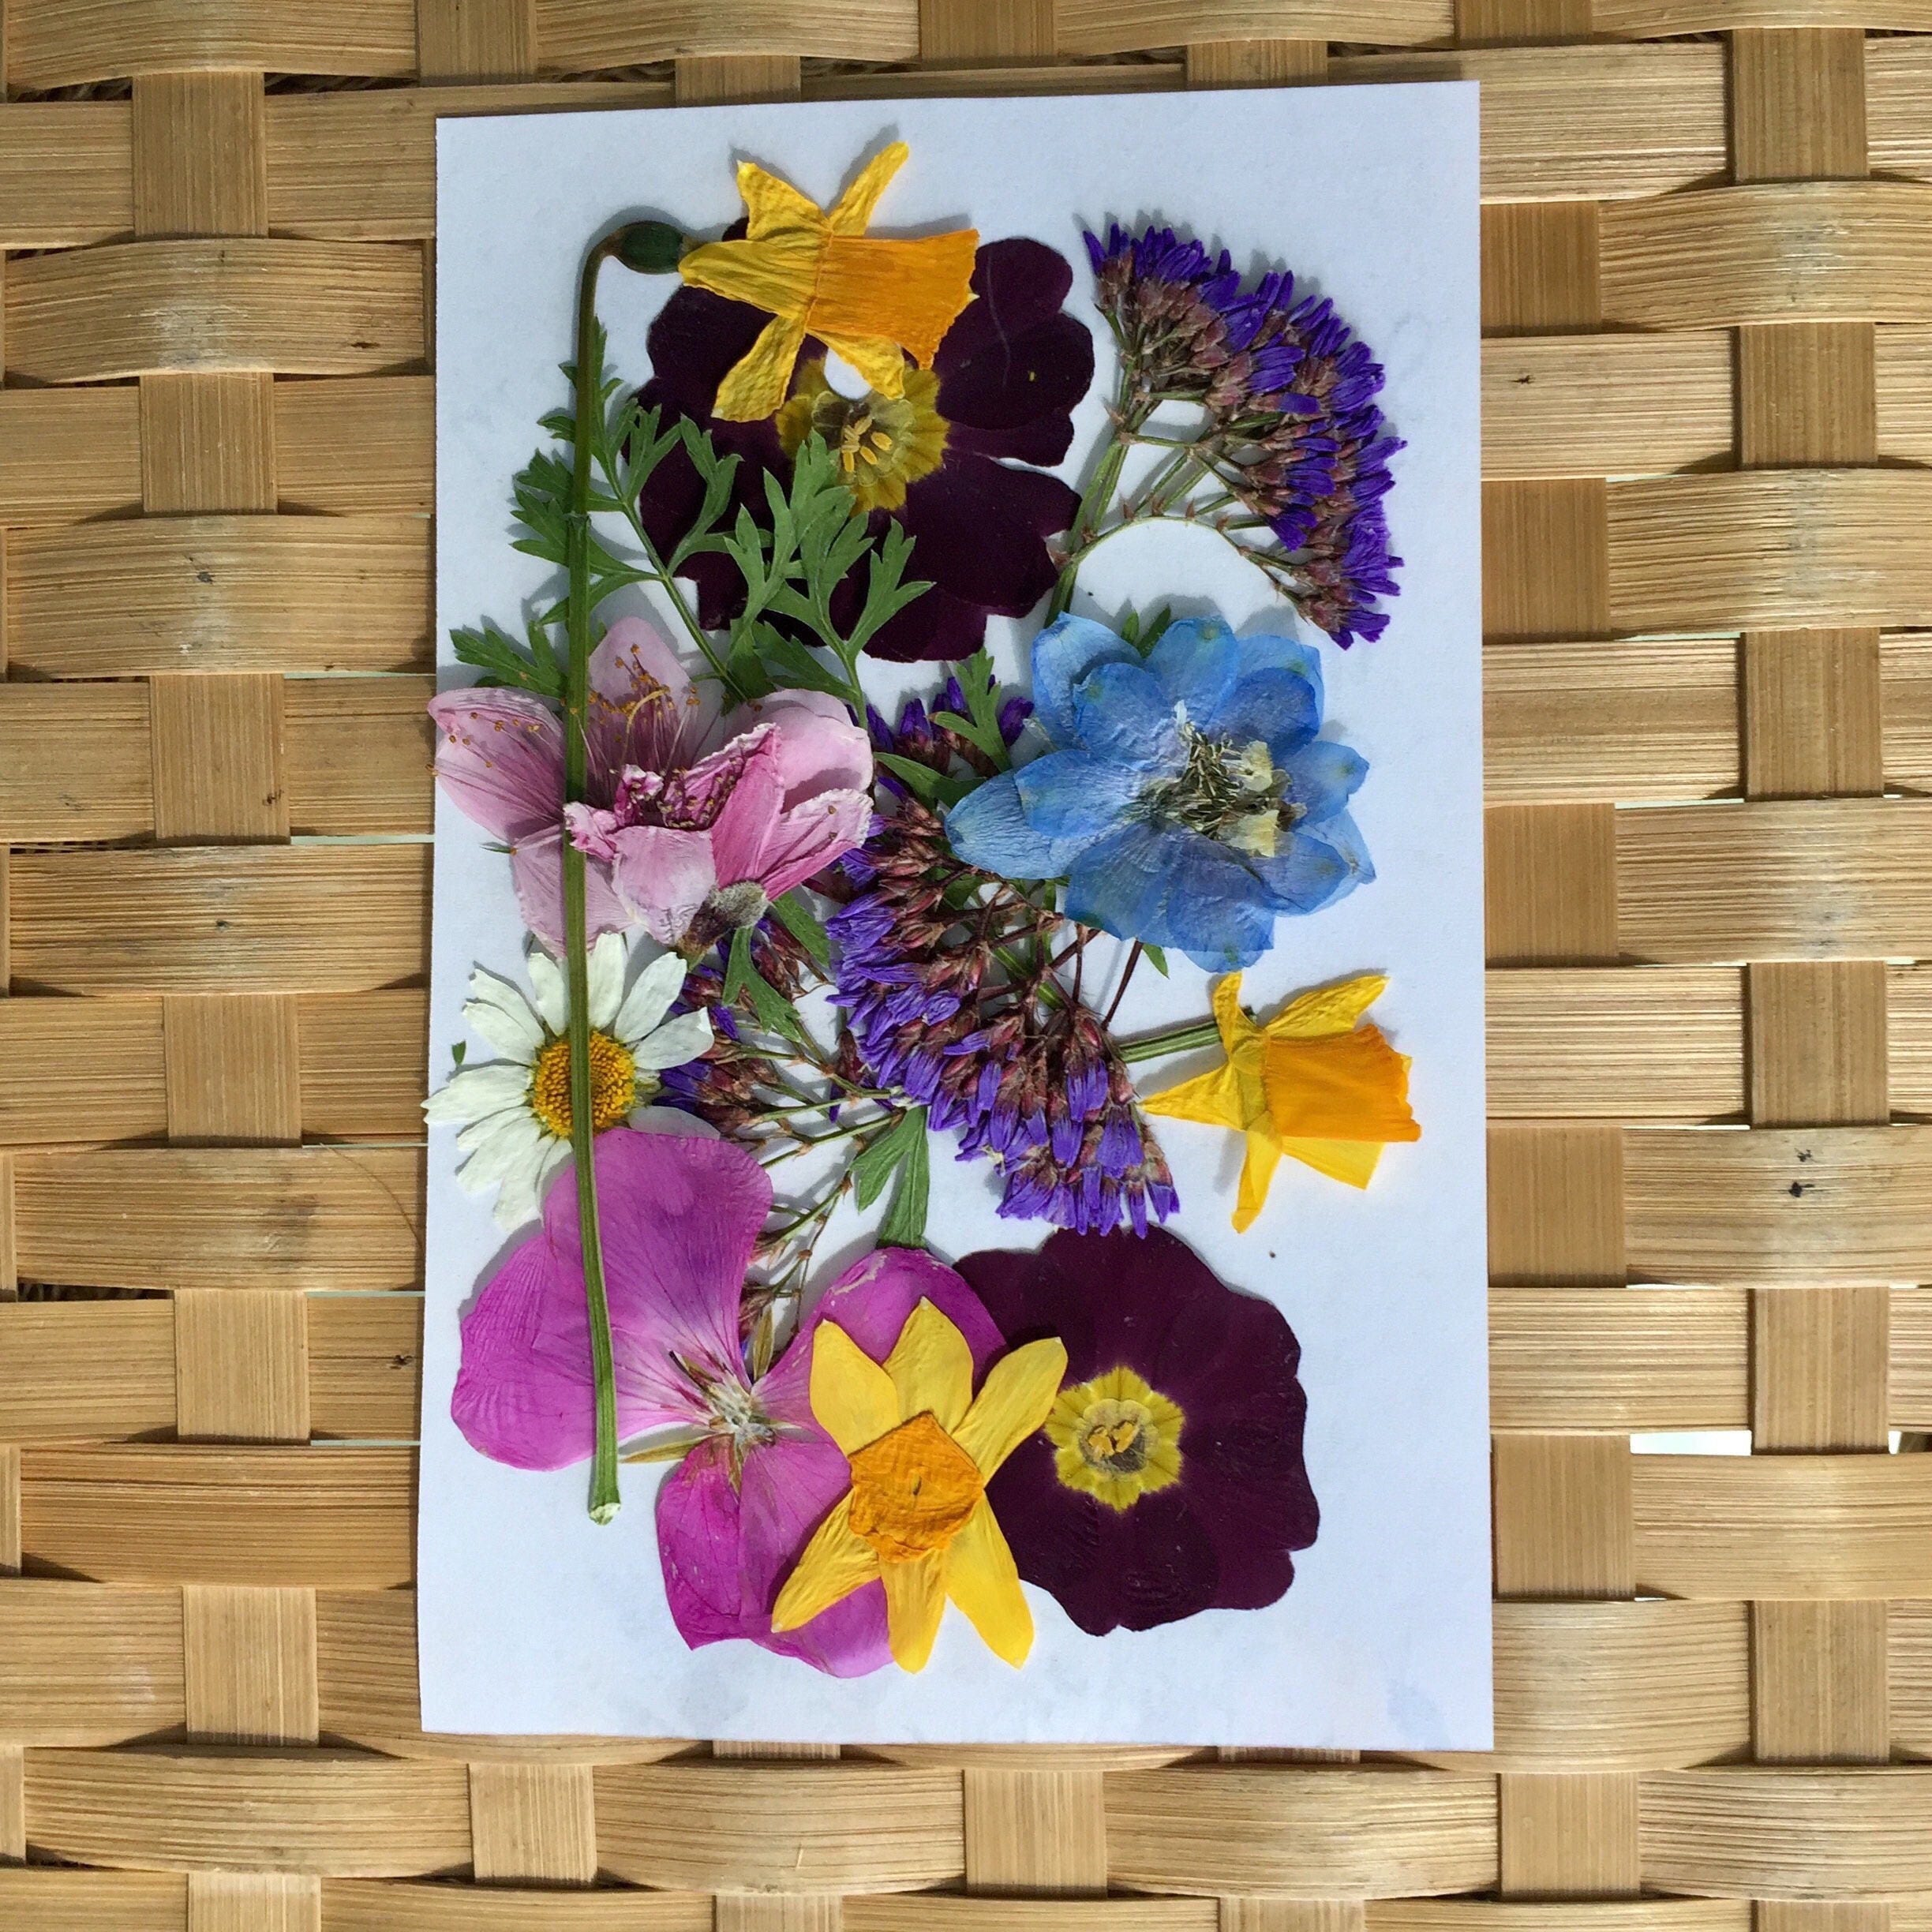 200 pressed flowers petals and leaves dried flowers